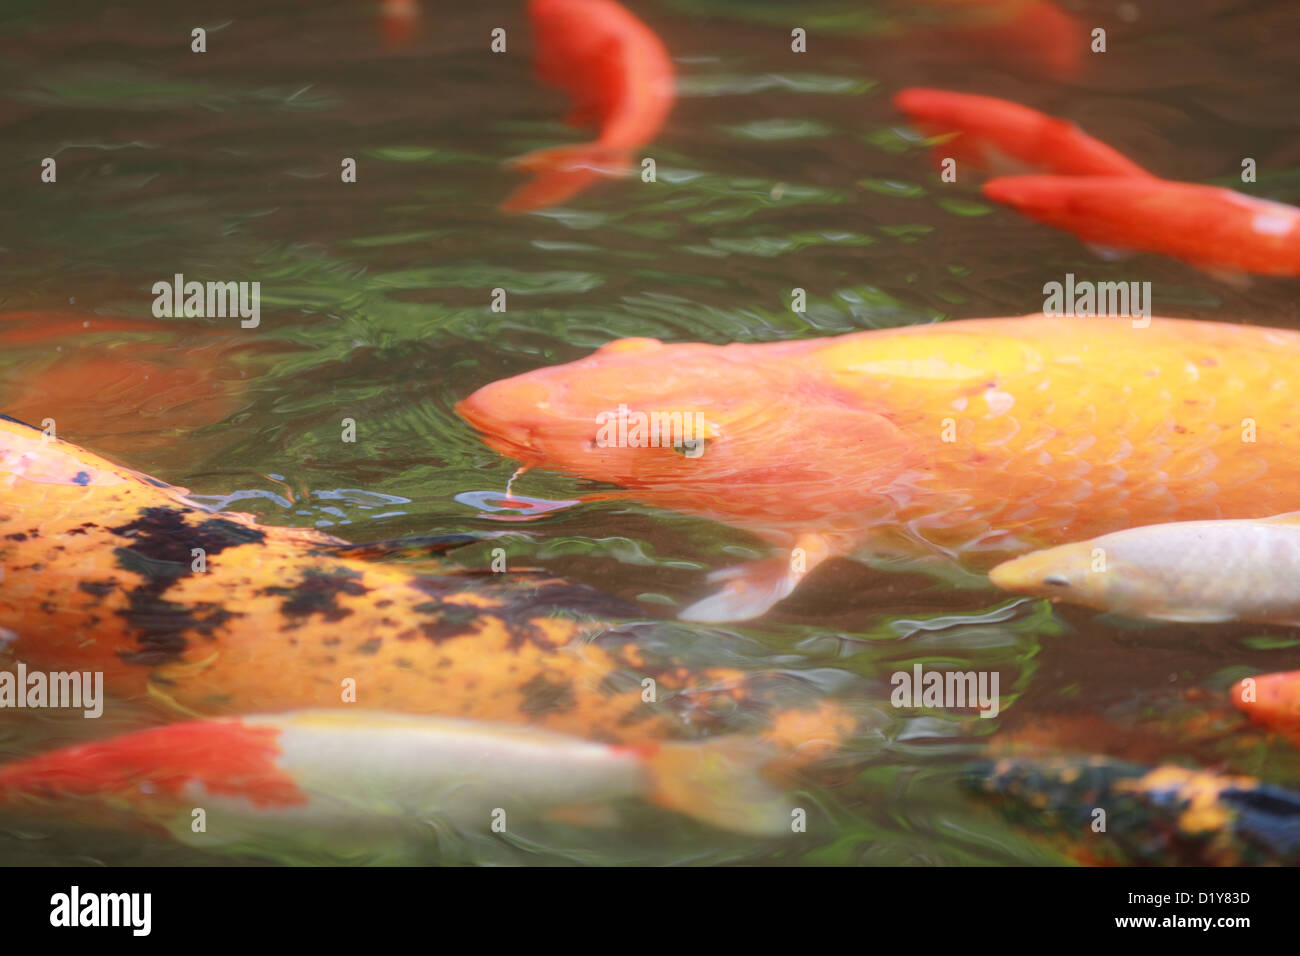 Koi fish in a pond stock photo royalty free image for Ornamental pond fish golden